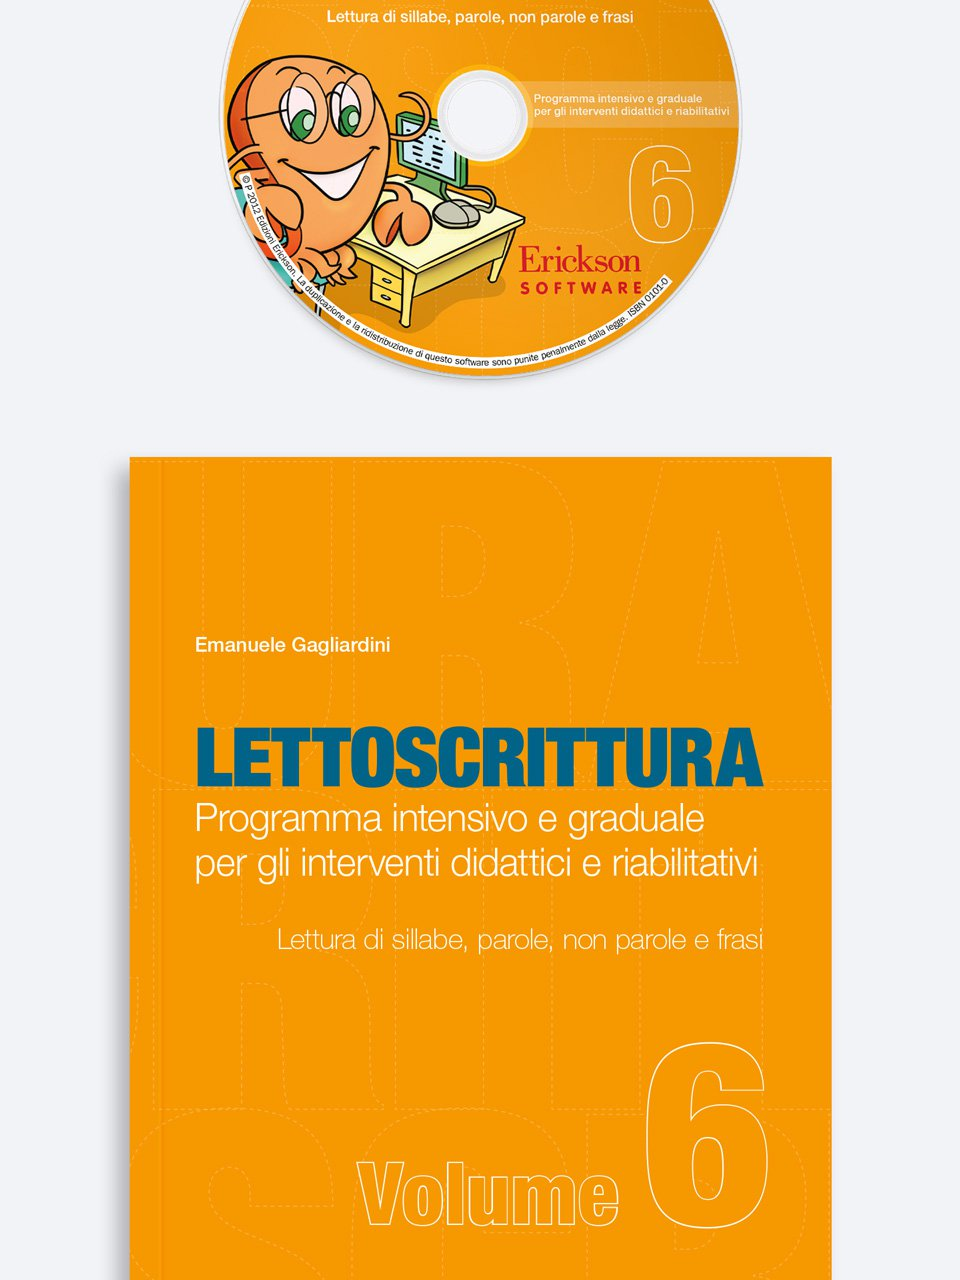 LETTOSCRITTURA - Volume 6 - Strategie di lettura metacognitiva - Libri - Erickson 3